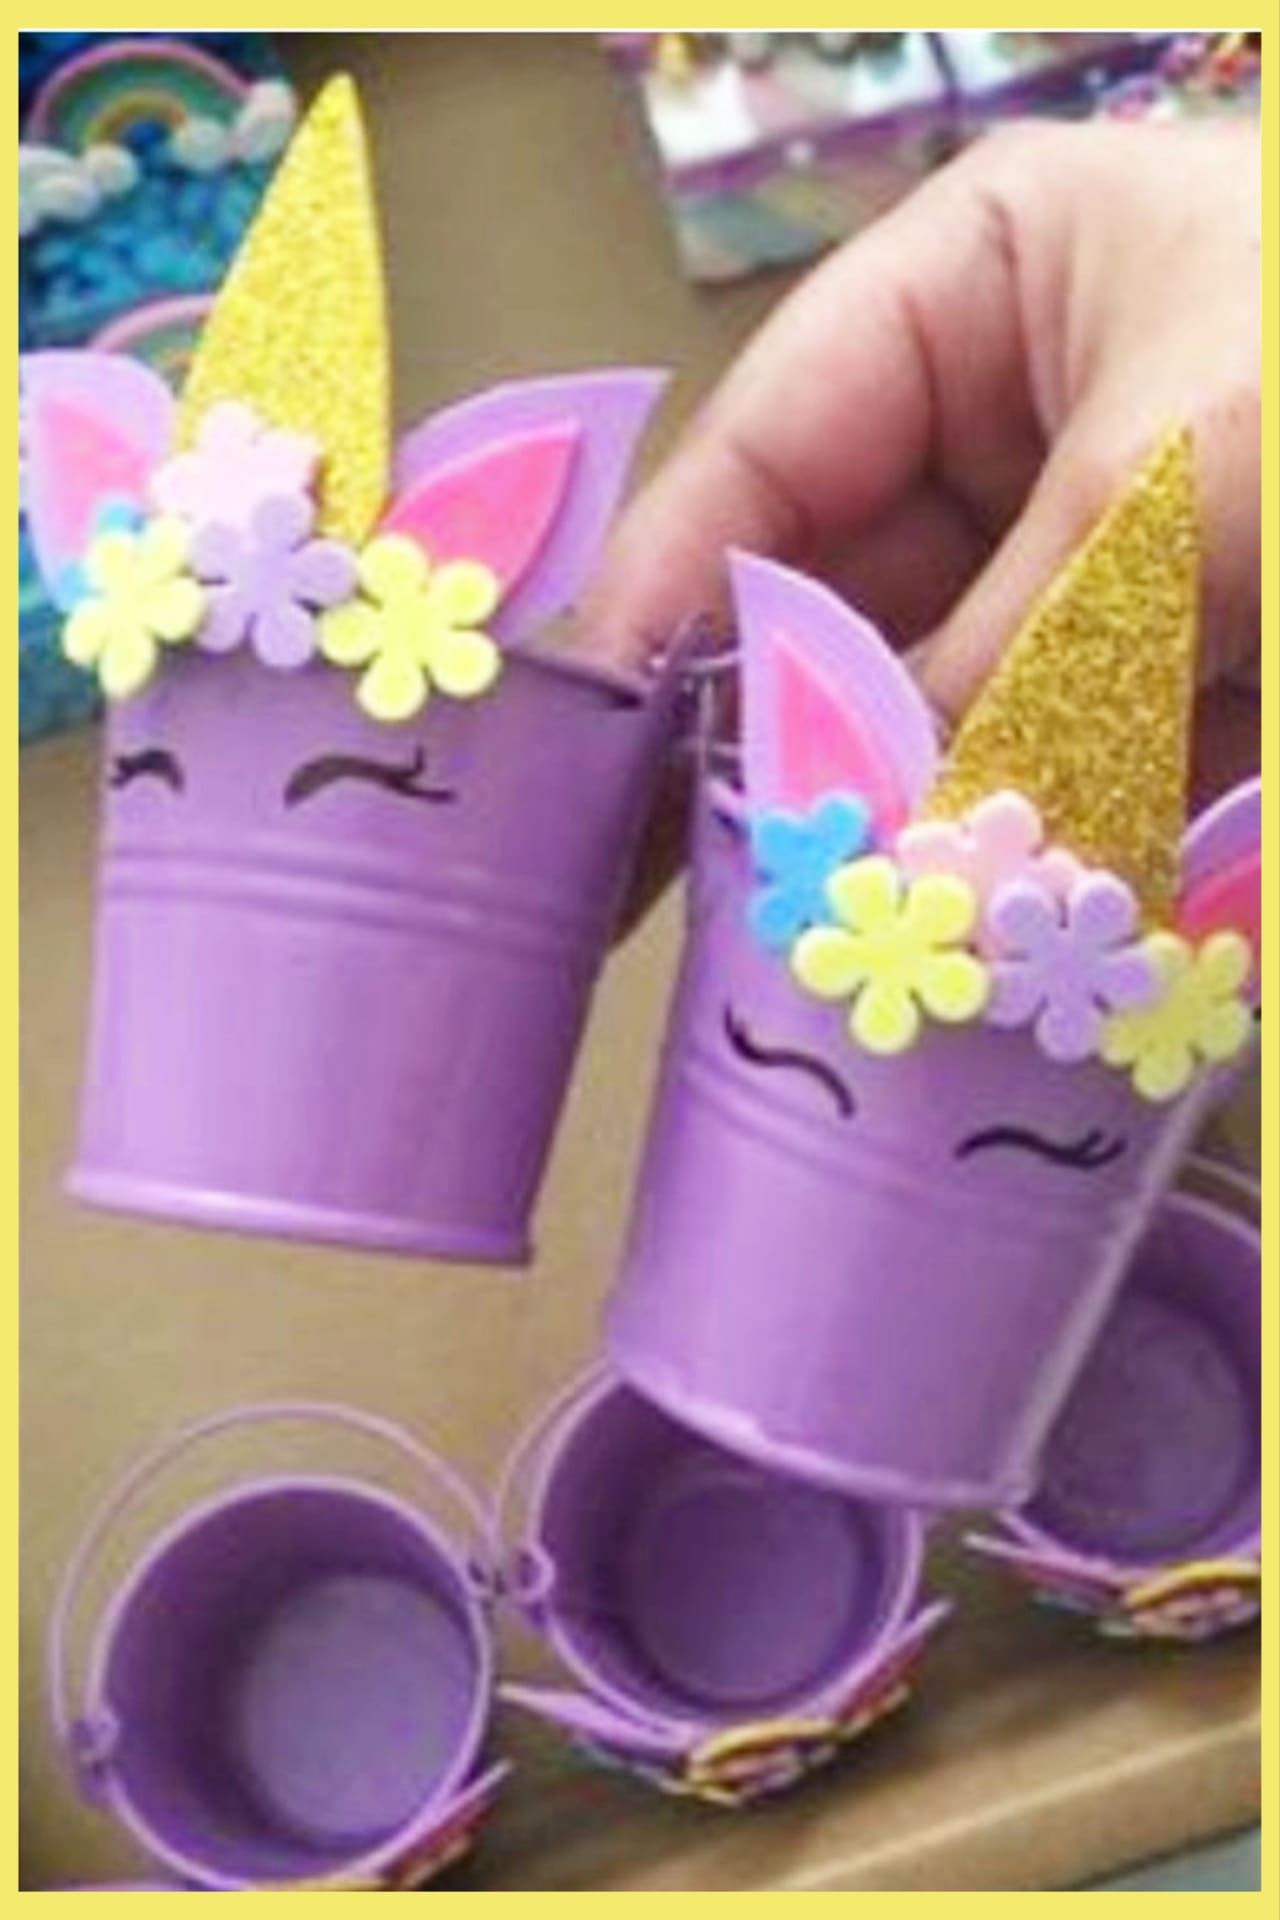 Unicorn Crafts for Kids  Cute & Easy DIY Unicorn Craft Ideas - Unicorn crafts, Birthday party crafts, Crafts, Kids unicorn party, Crafts for kids, Craft projects for kids - Fun and Easy Unicorn Craft Projects For Kids To Make • Whether it's a unicorn birthday party that you need craft ideas for or you want some easy unicorns crafts …